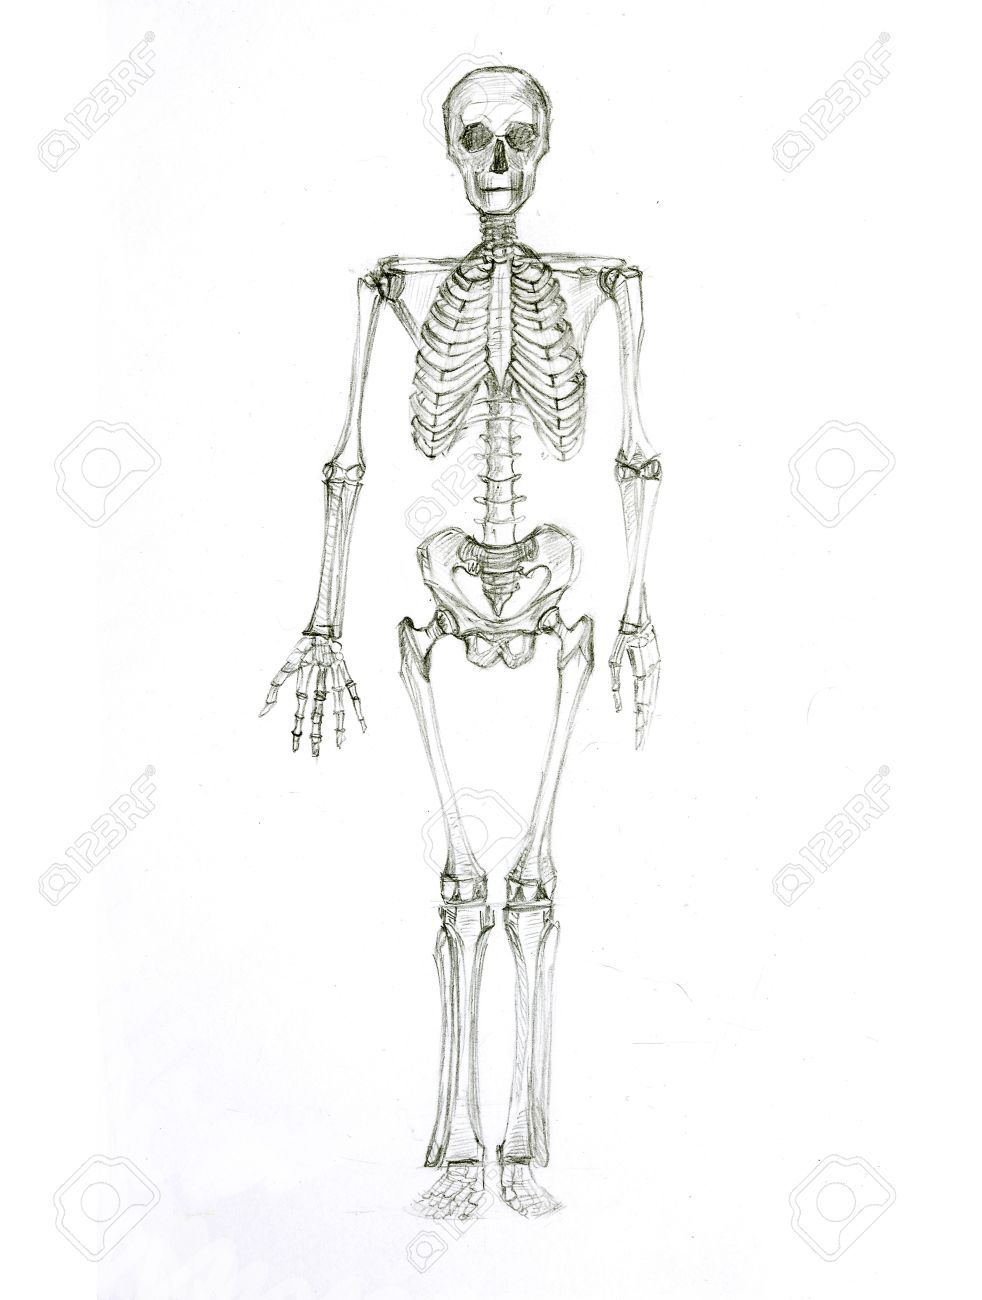 Pencil Sketch A Skeleton Stock Photo, Picture And Royalty Free Image ...